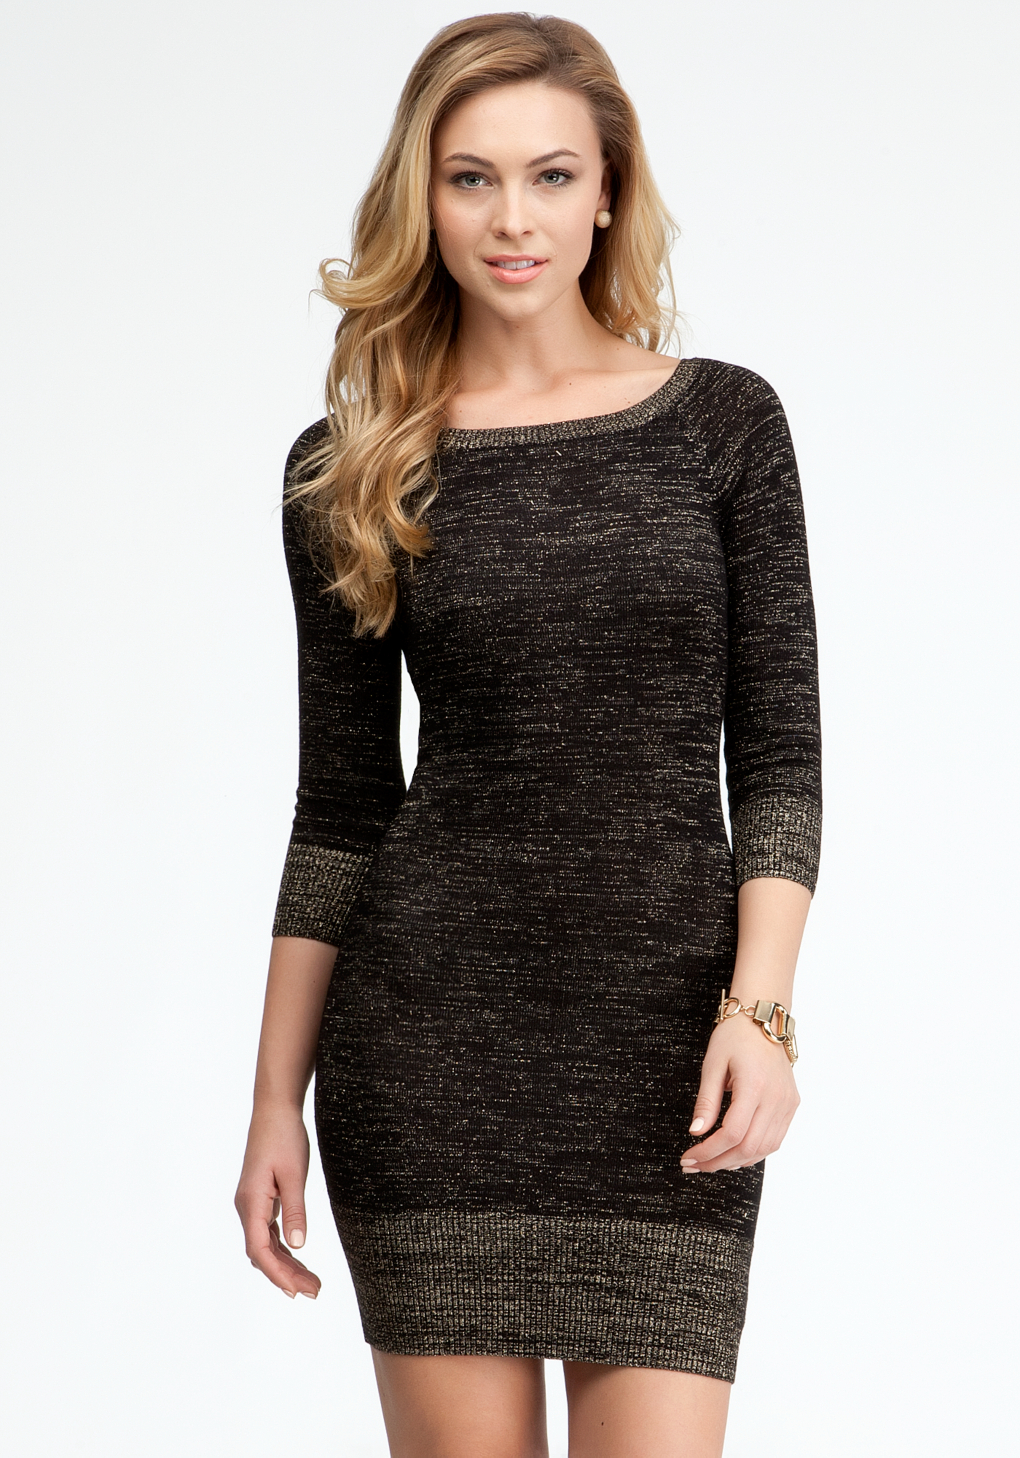 Linen Boatneck Dress is rated out of 5 by Rated 5 out of 5 by Marjie from Love it. Would trade a size 2 for a 4 I love this dress so much I purchased another in the same size and color.